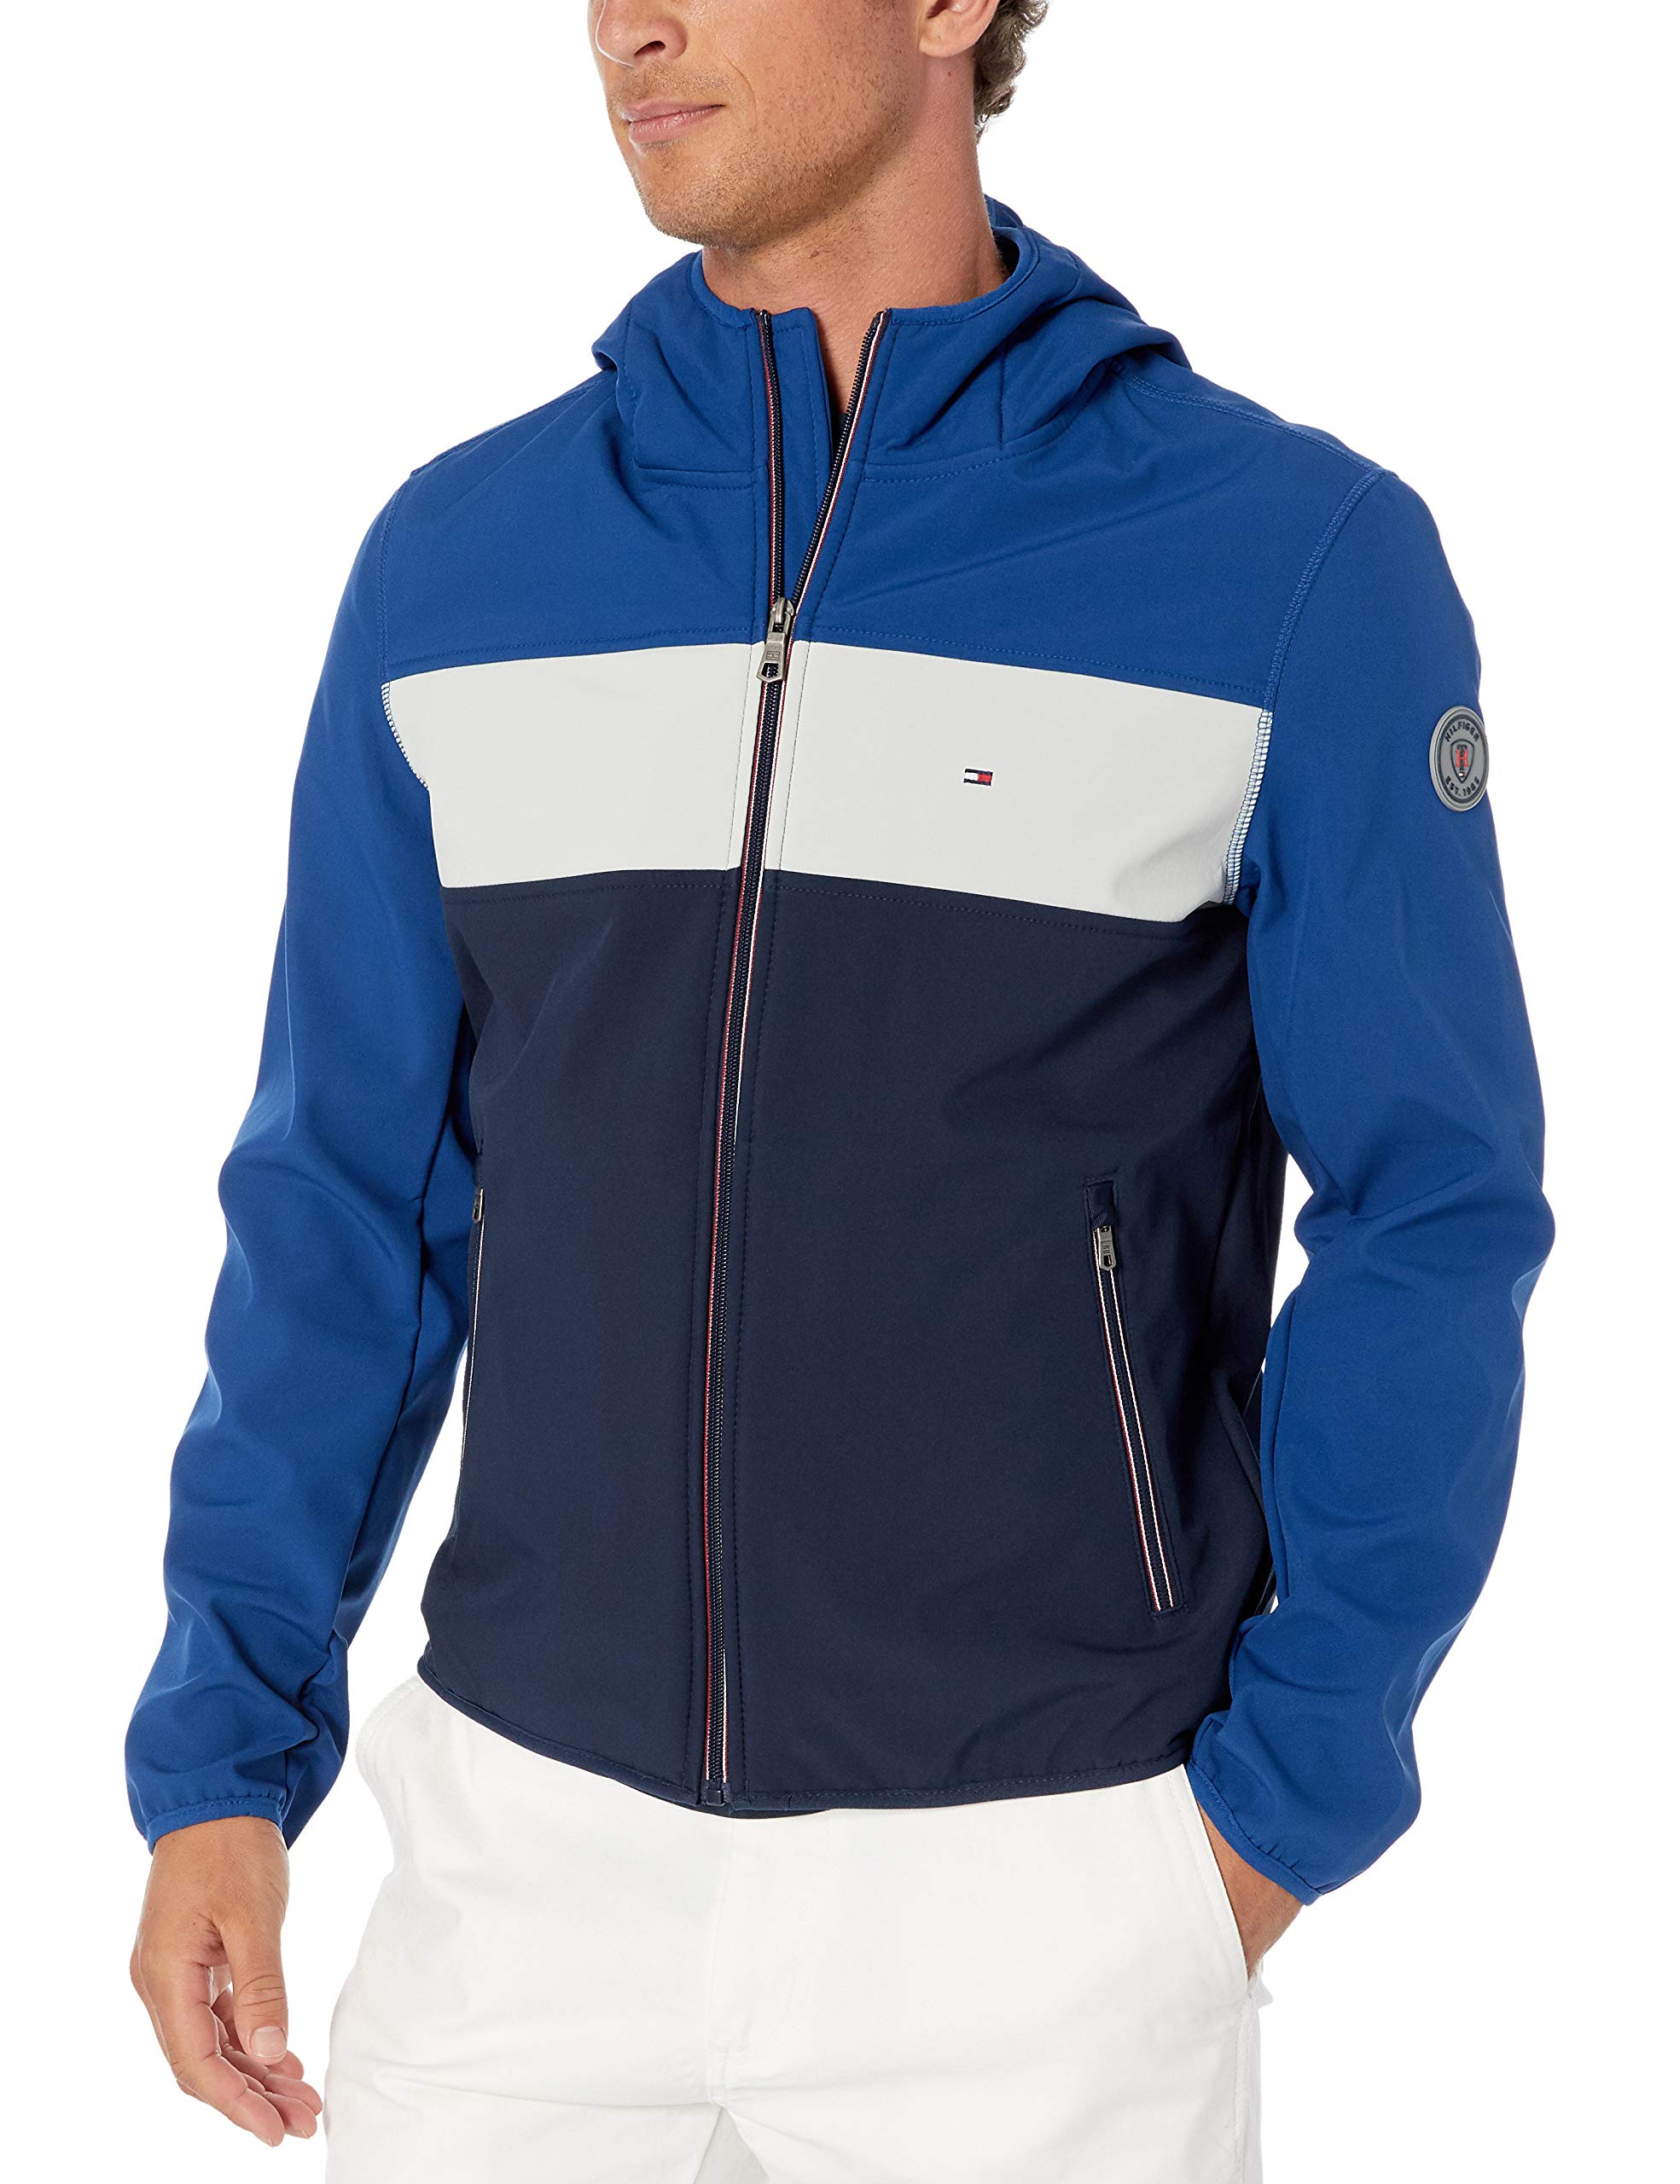 Tommy Hilfiger Men's Hooded Performance Soft Shell Jacket, Blue/White Color Block, Medium by Tommy Hilfiger